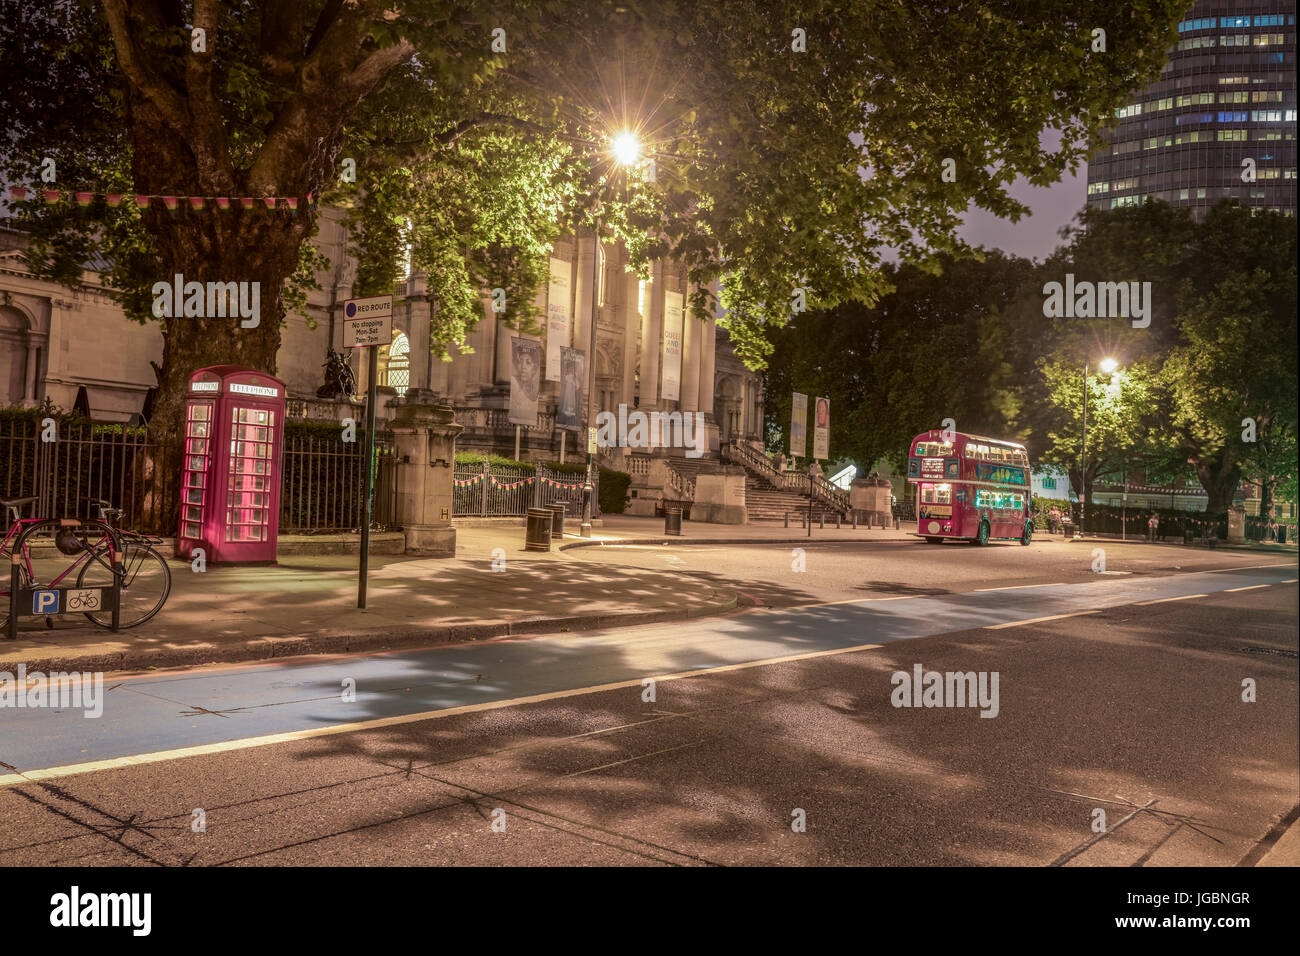 Red Phone Box and Bus in front of Tate Britain - Stock Image